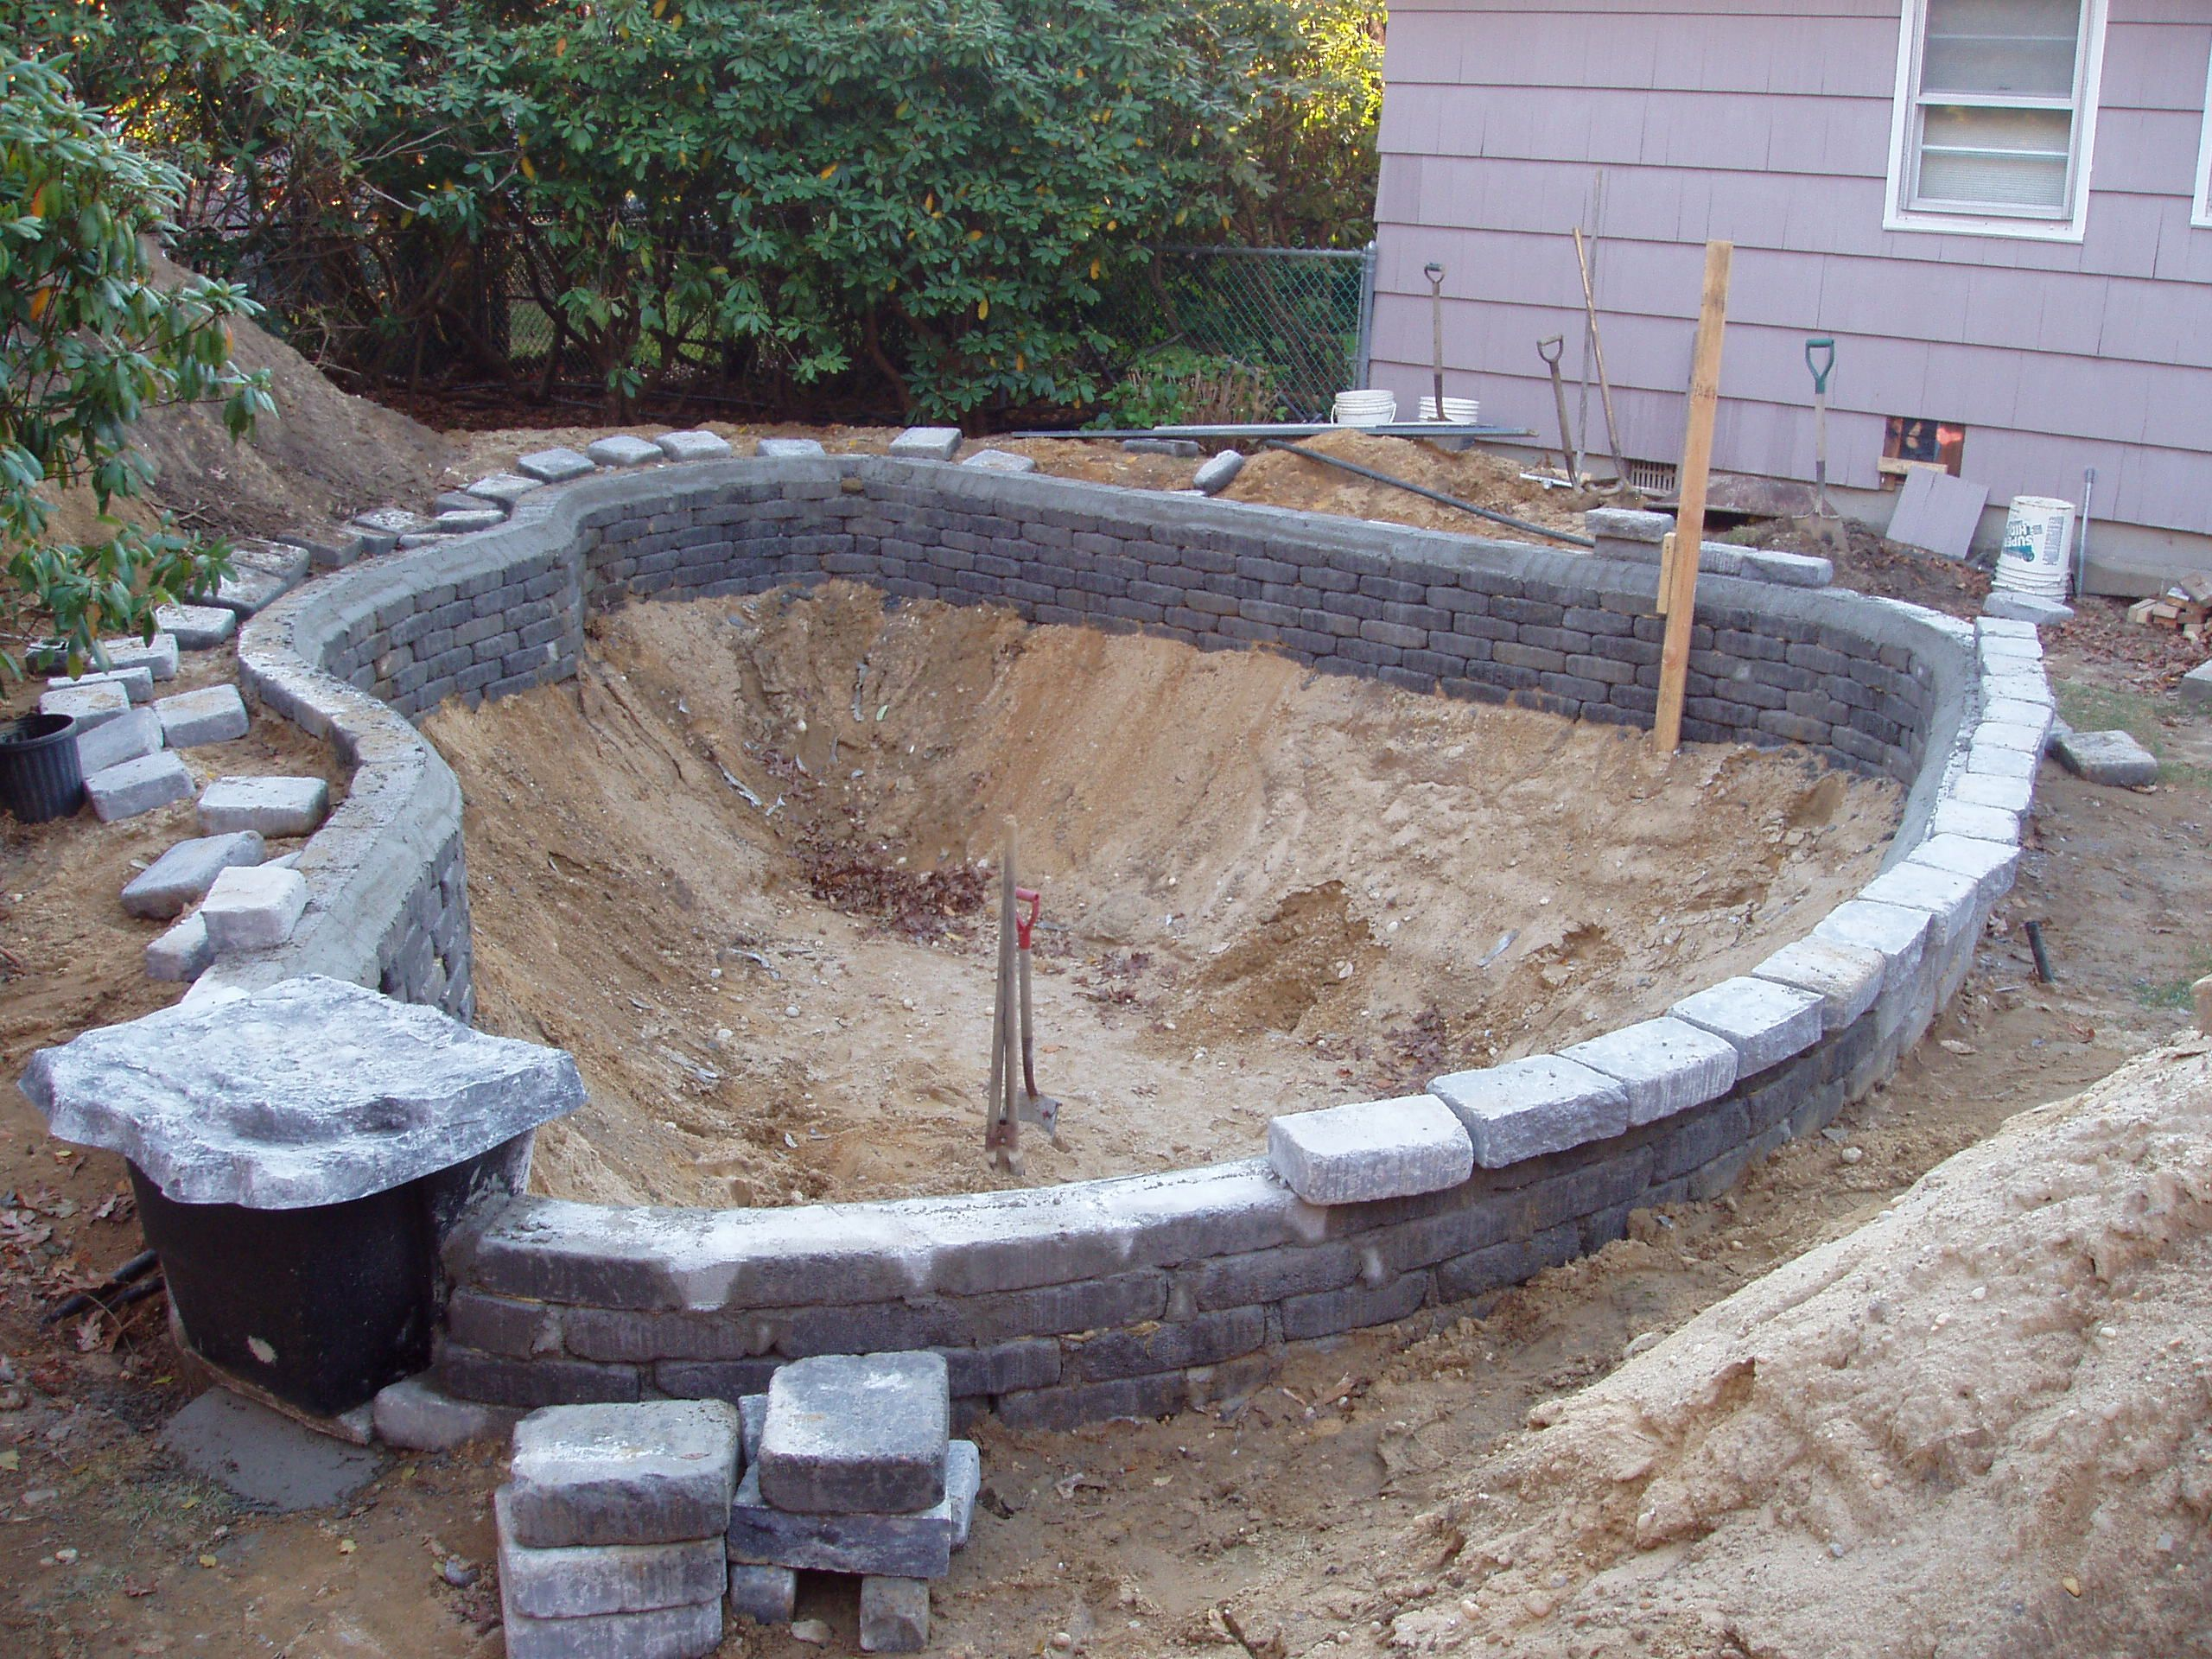 Pond design and construction google search aquaponics for How to build a small koi pond